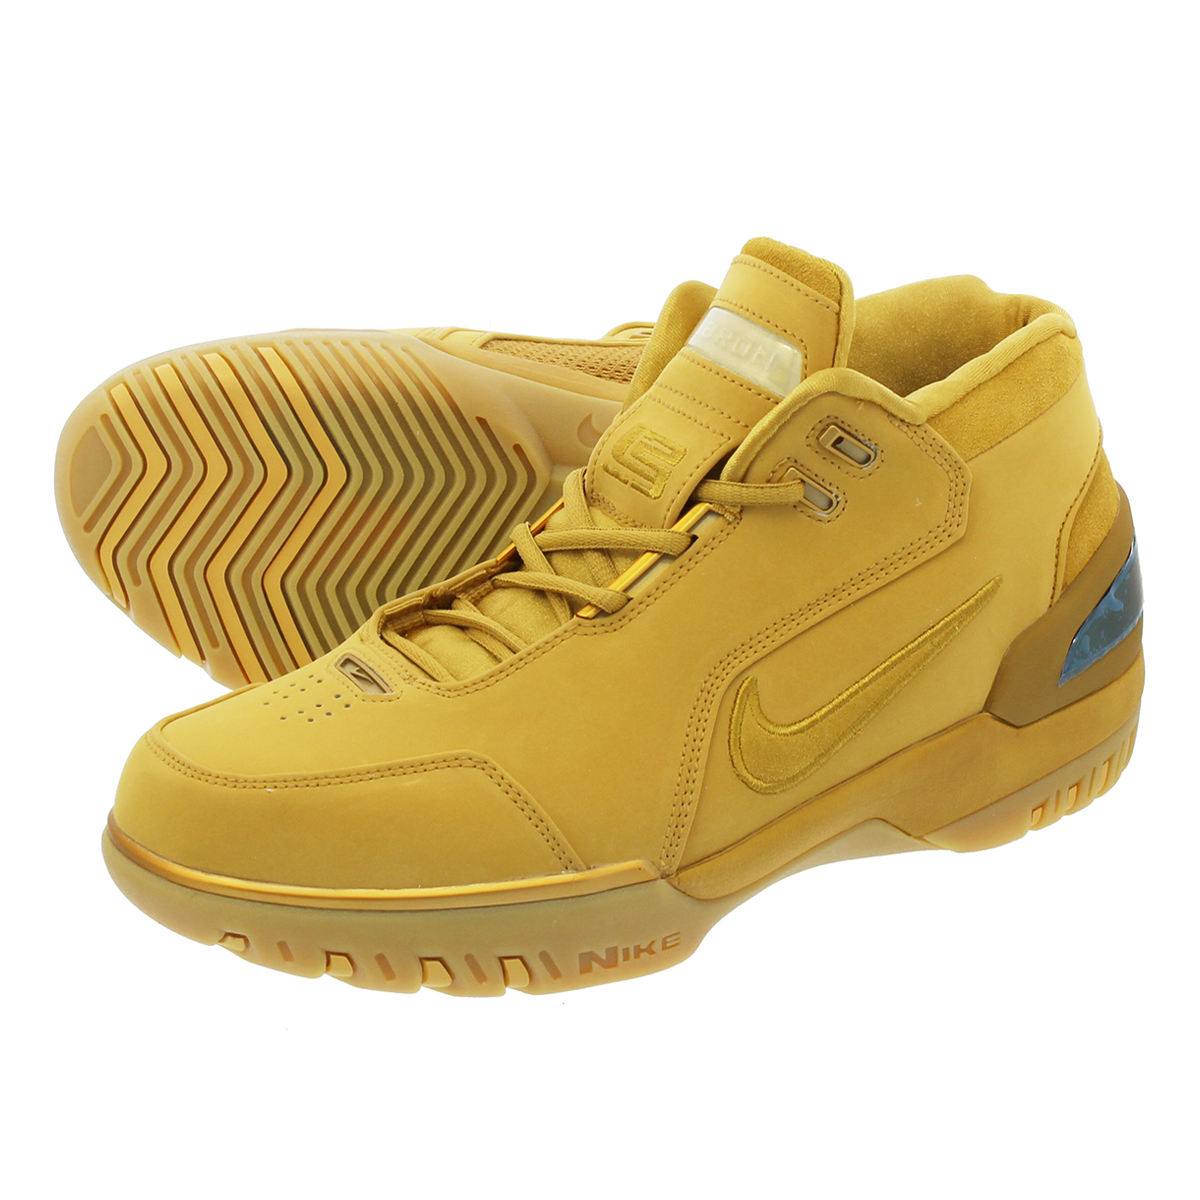 pretty nice 2c793 132ac LOWTEX PLUS: NIKE AIR ZOOM GENERATION ASG QS Nike air zoom generation ASG  QS WHEAT GOLD/METALLIC GOLD aq0110-700 | Rakuten Global Market